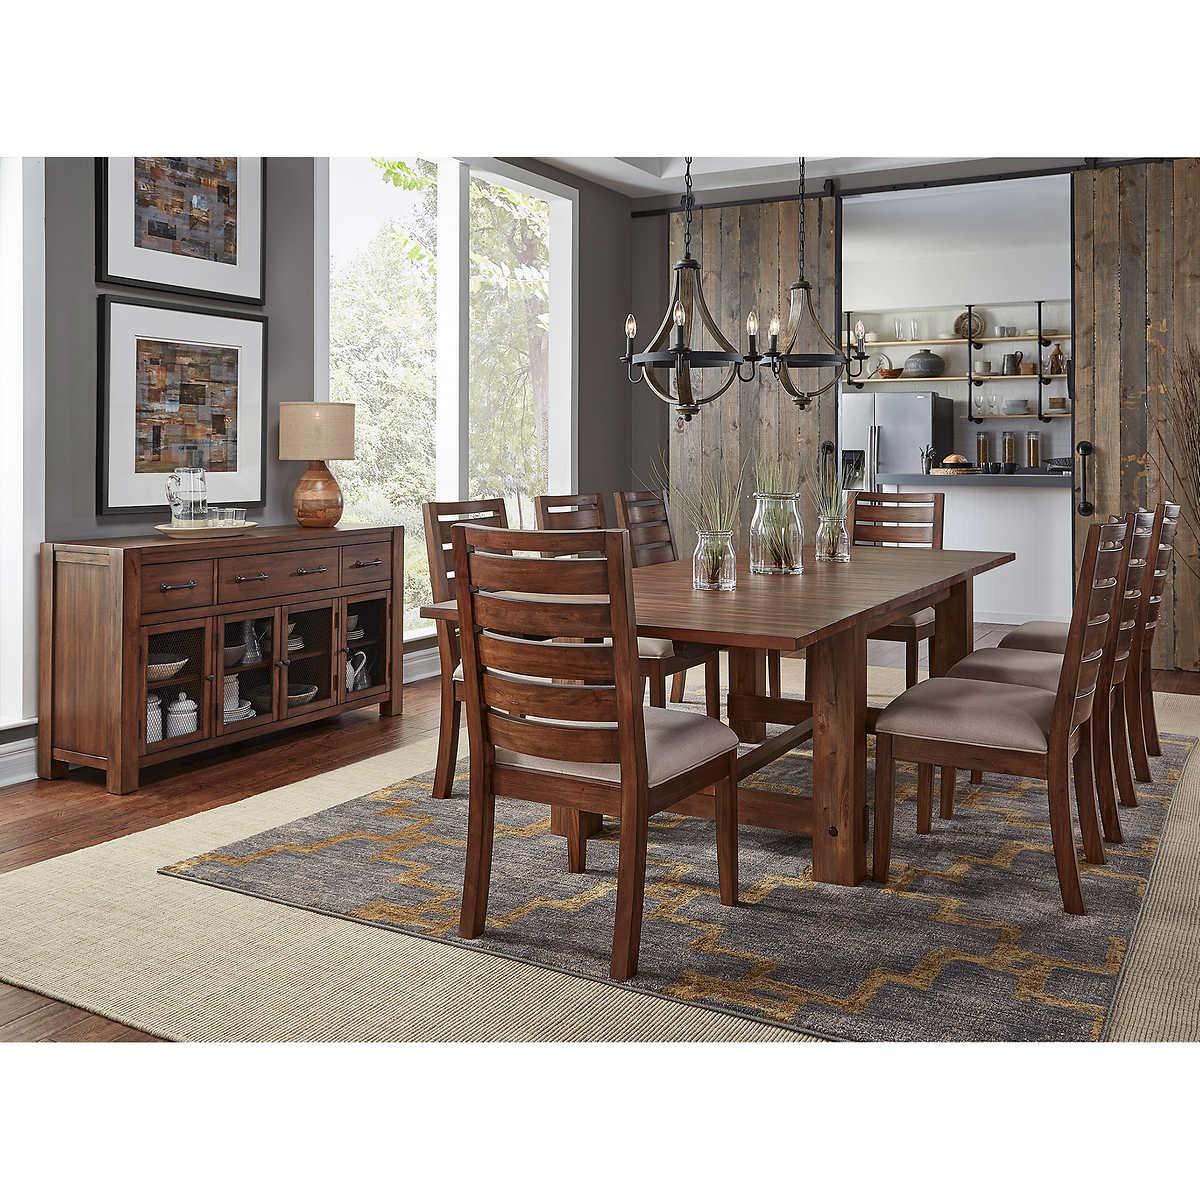 dining kitchen furniture costco archer 10 piece dining set